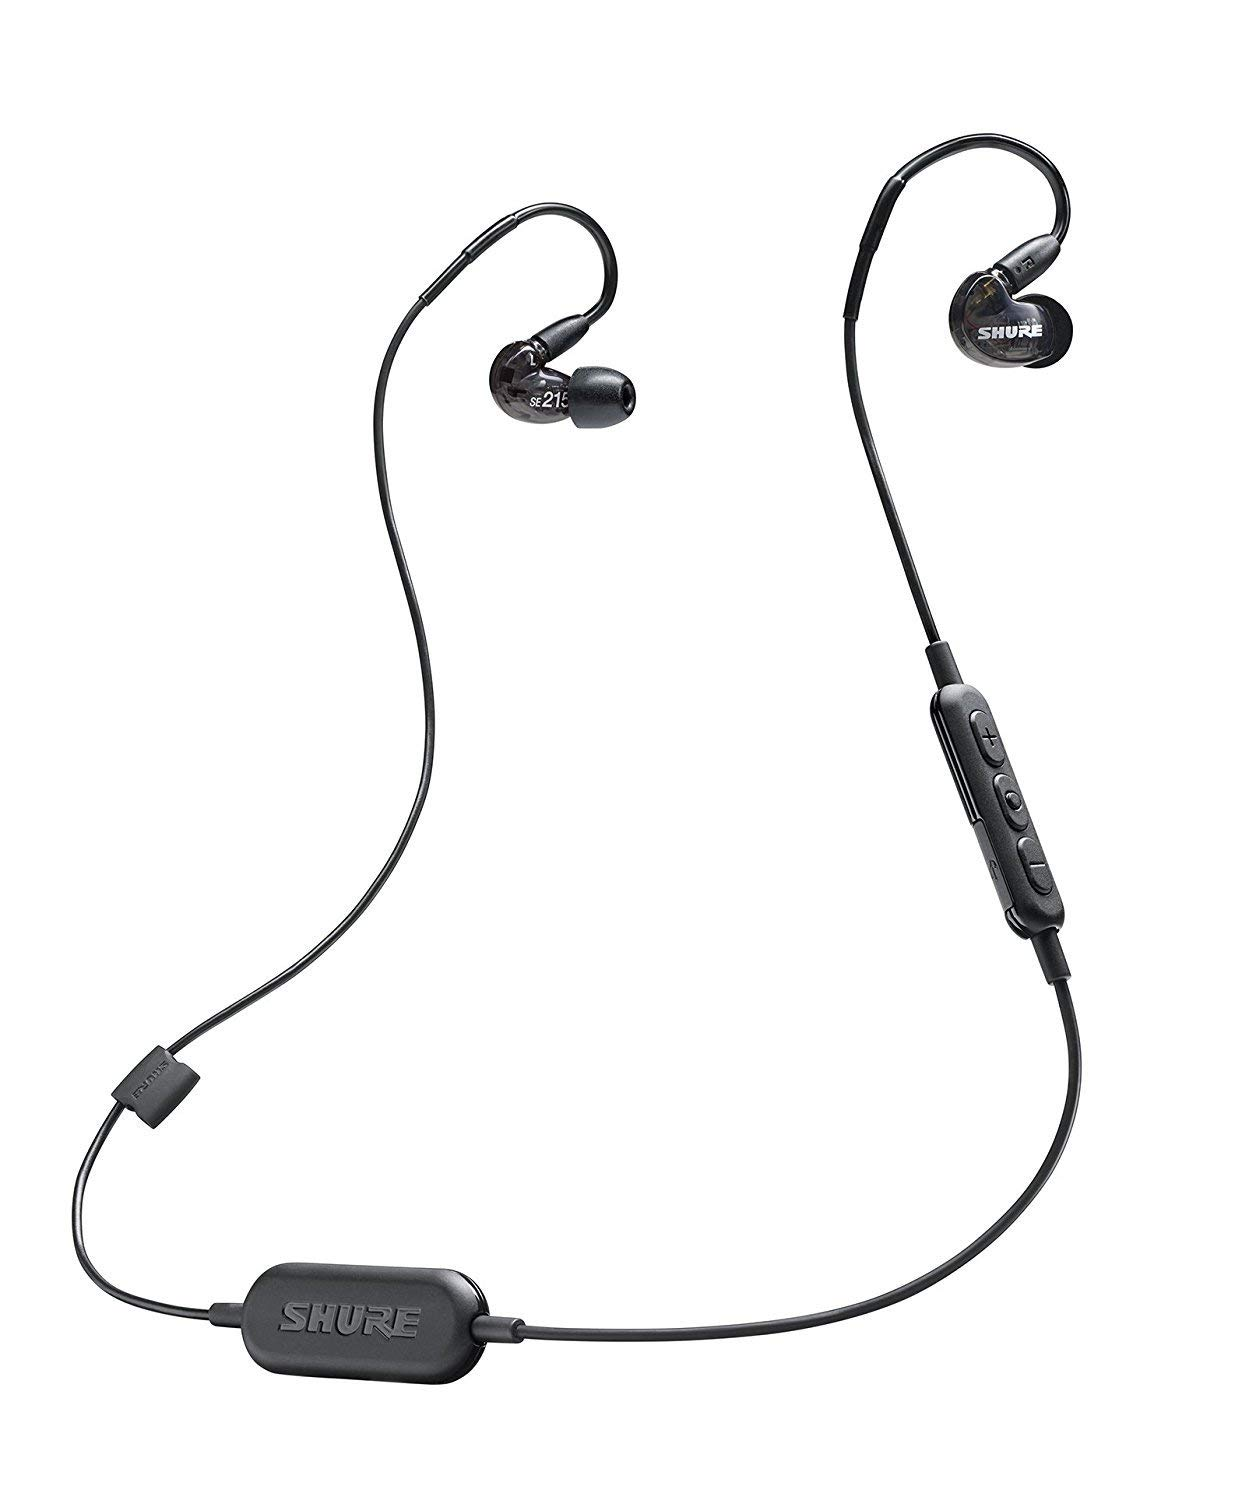 shure bluetooth headphones